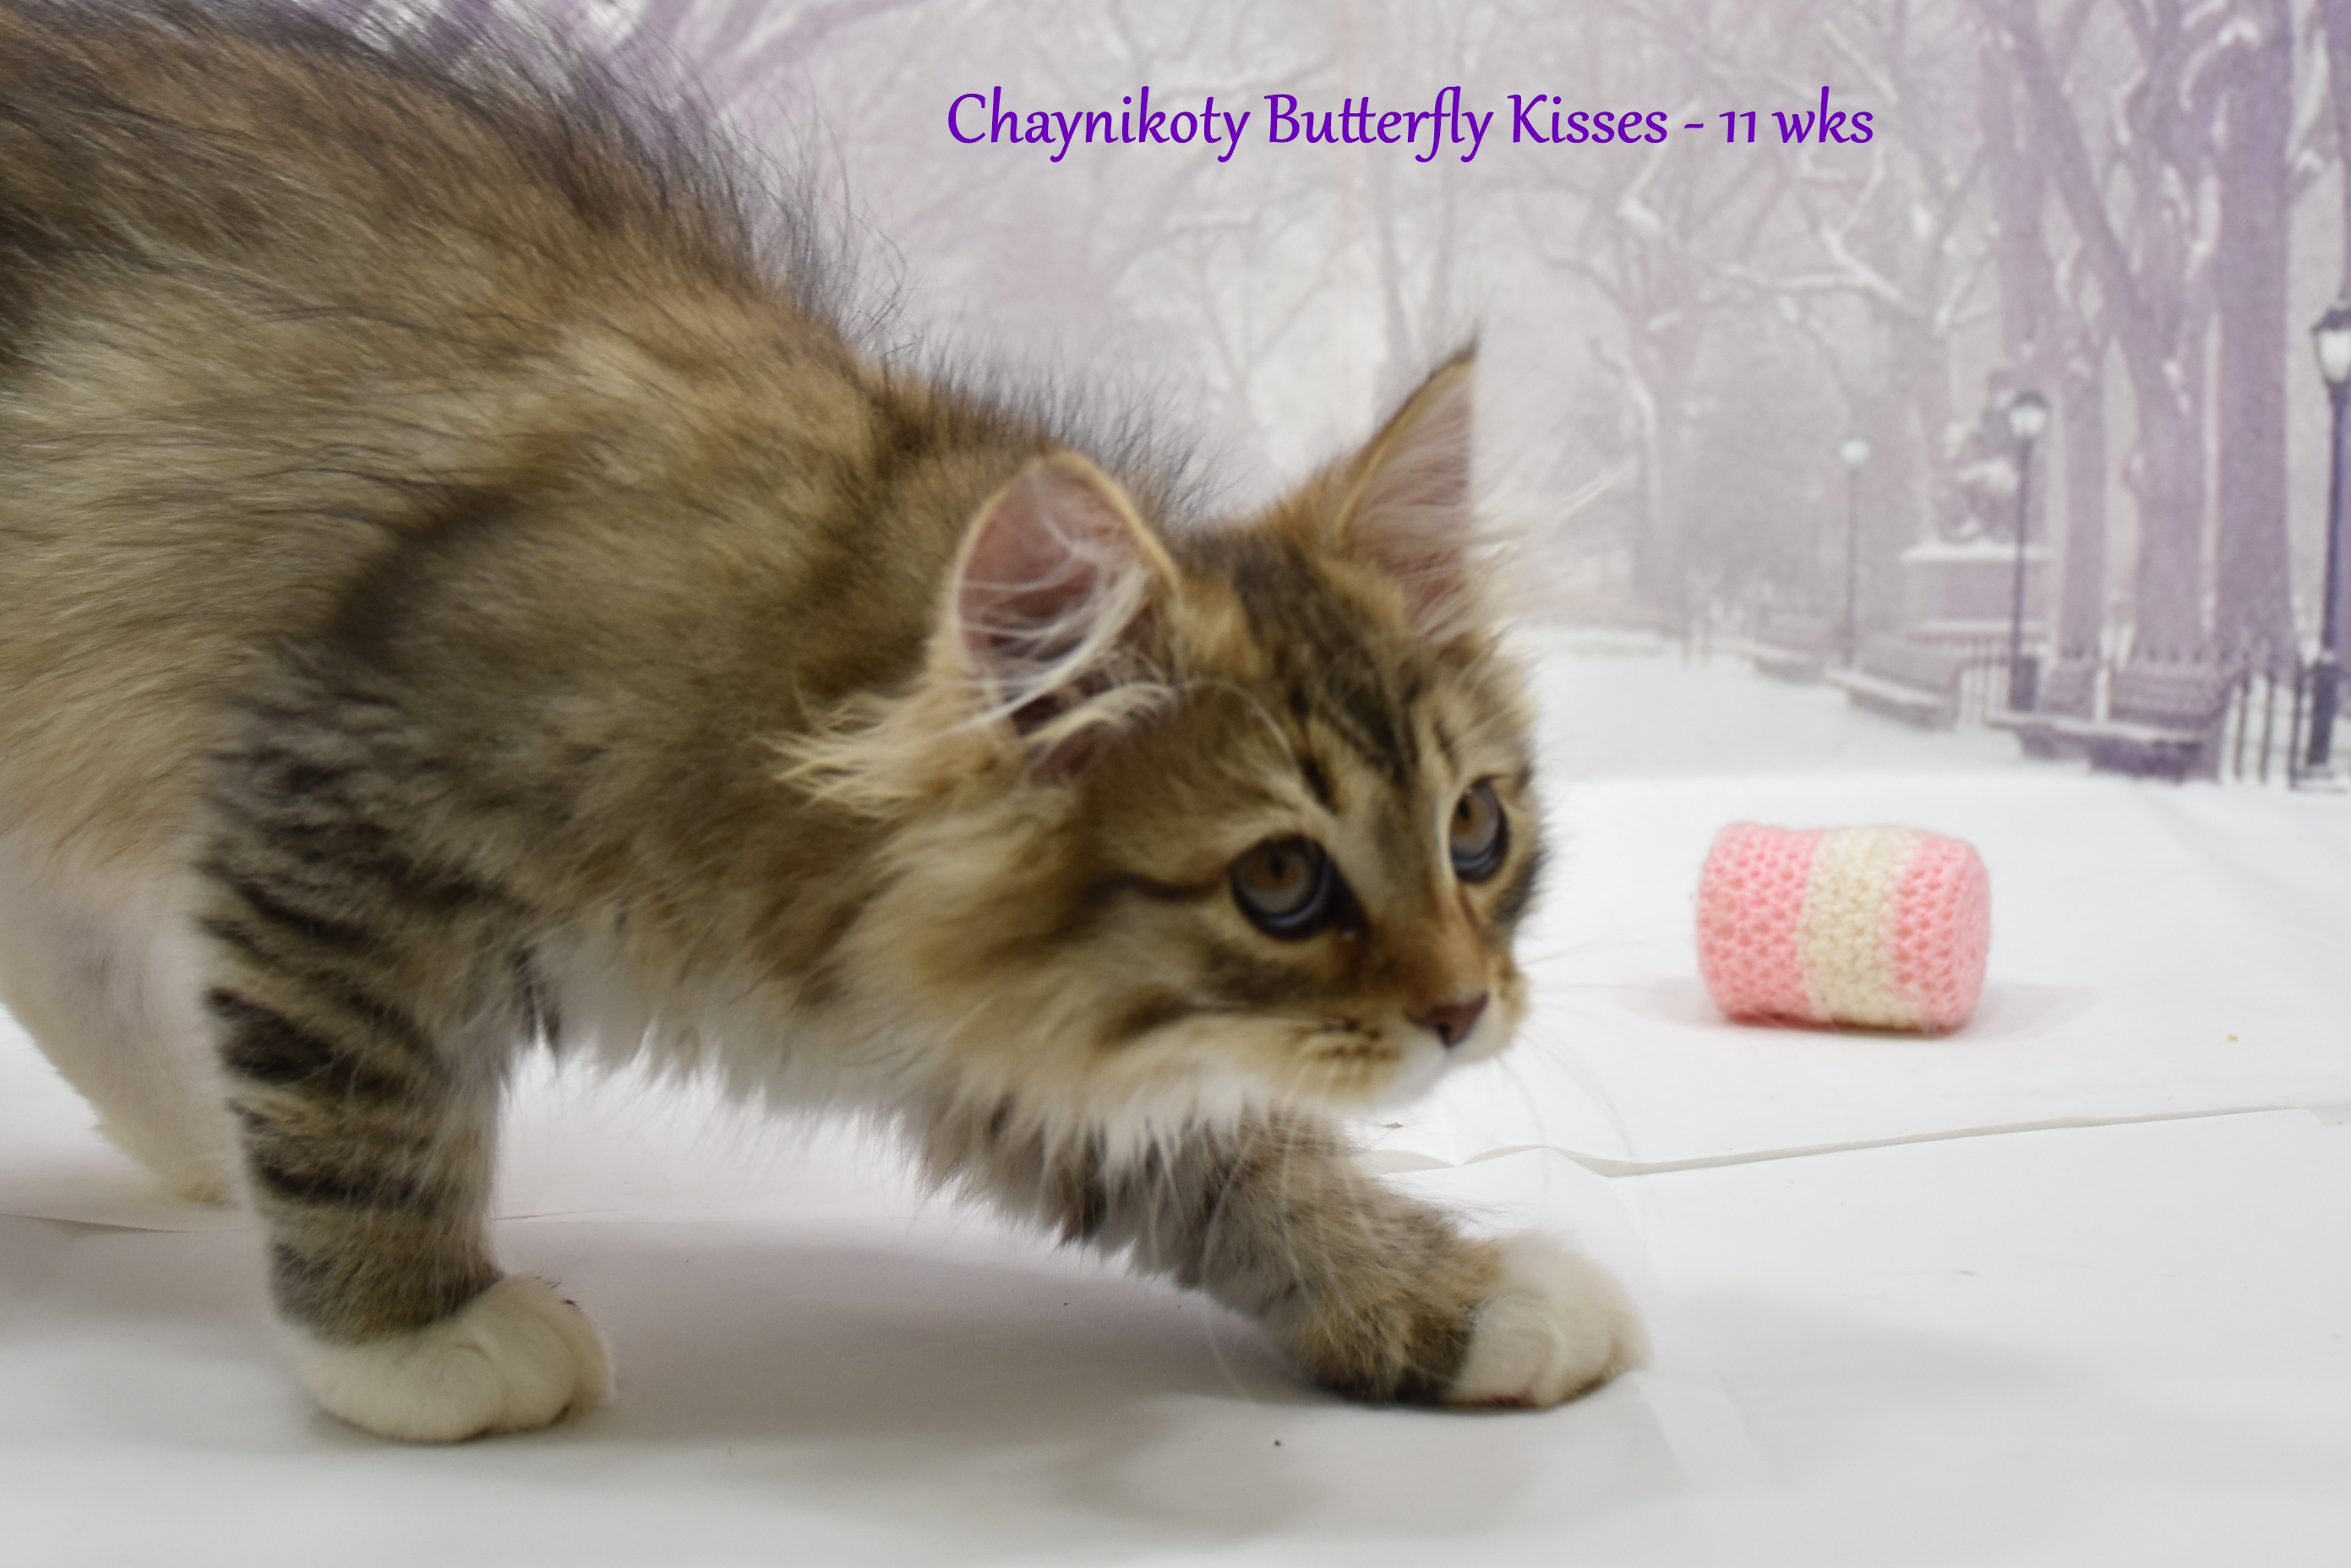 Chaynikoty Butterfly Kisses